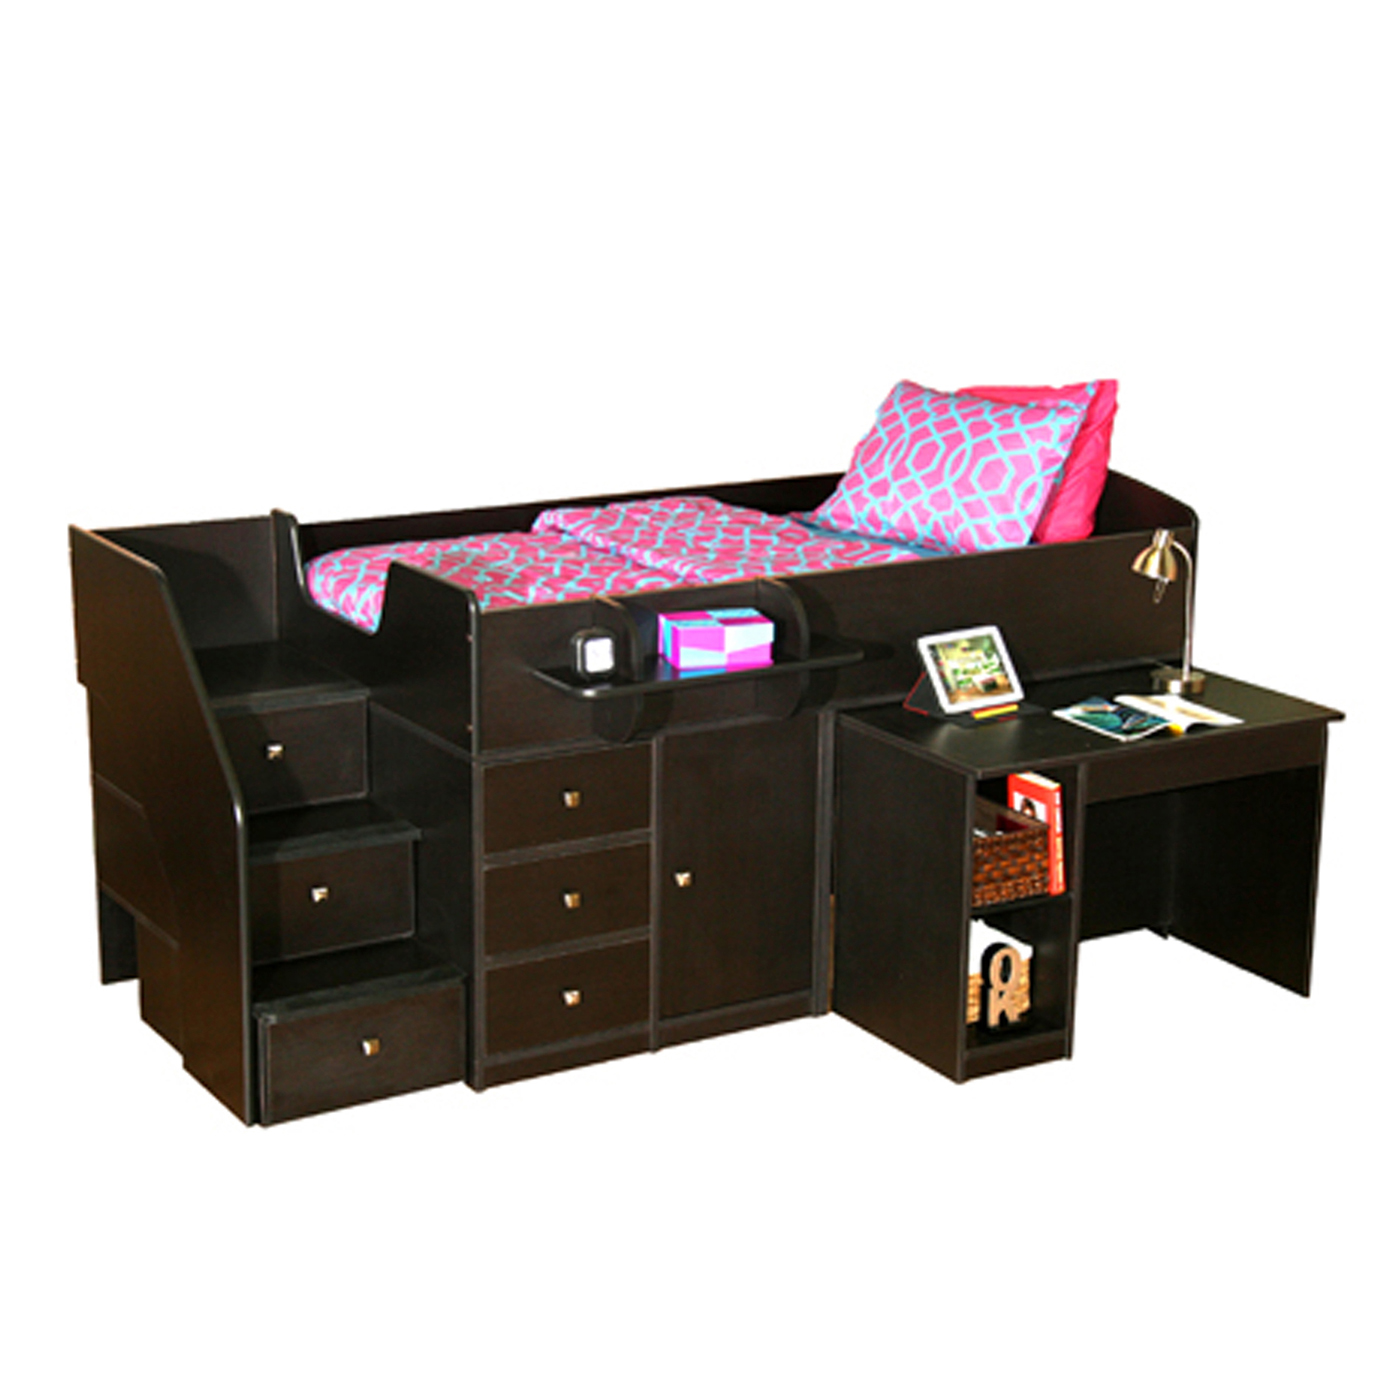 Berg Furniture Sierra Captain S Full Bed With Pull Out Desk Stairs Free Shipping